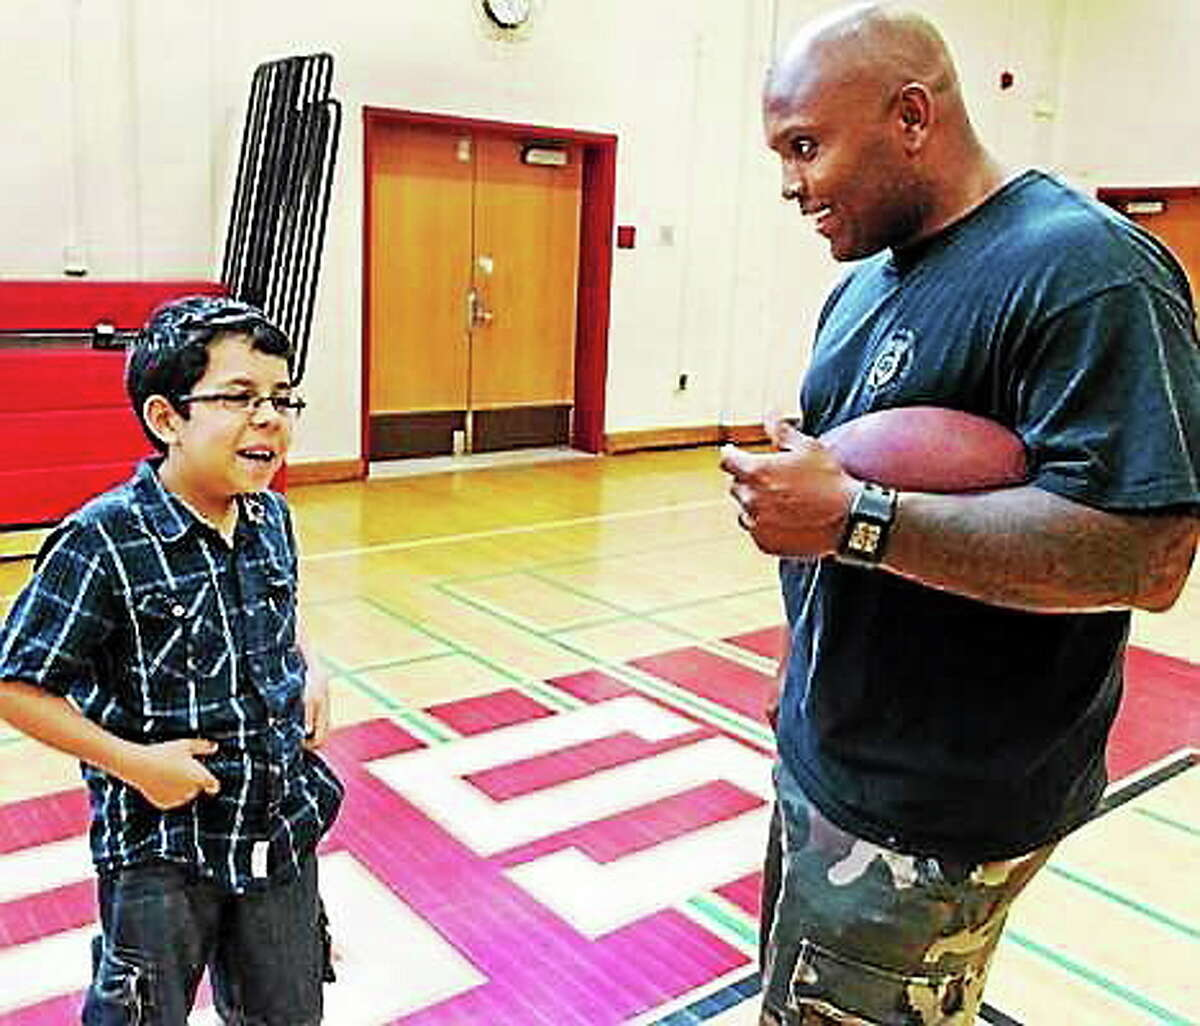 File photo: Melanie Stengel/New Haven Register Alex Rivera, 12, left, and New Haven Police Officer Charles Tyson talk at the start of New Haven police P.A.L. Camp 2013.